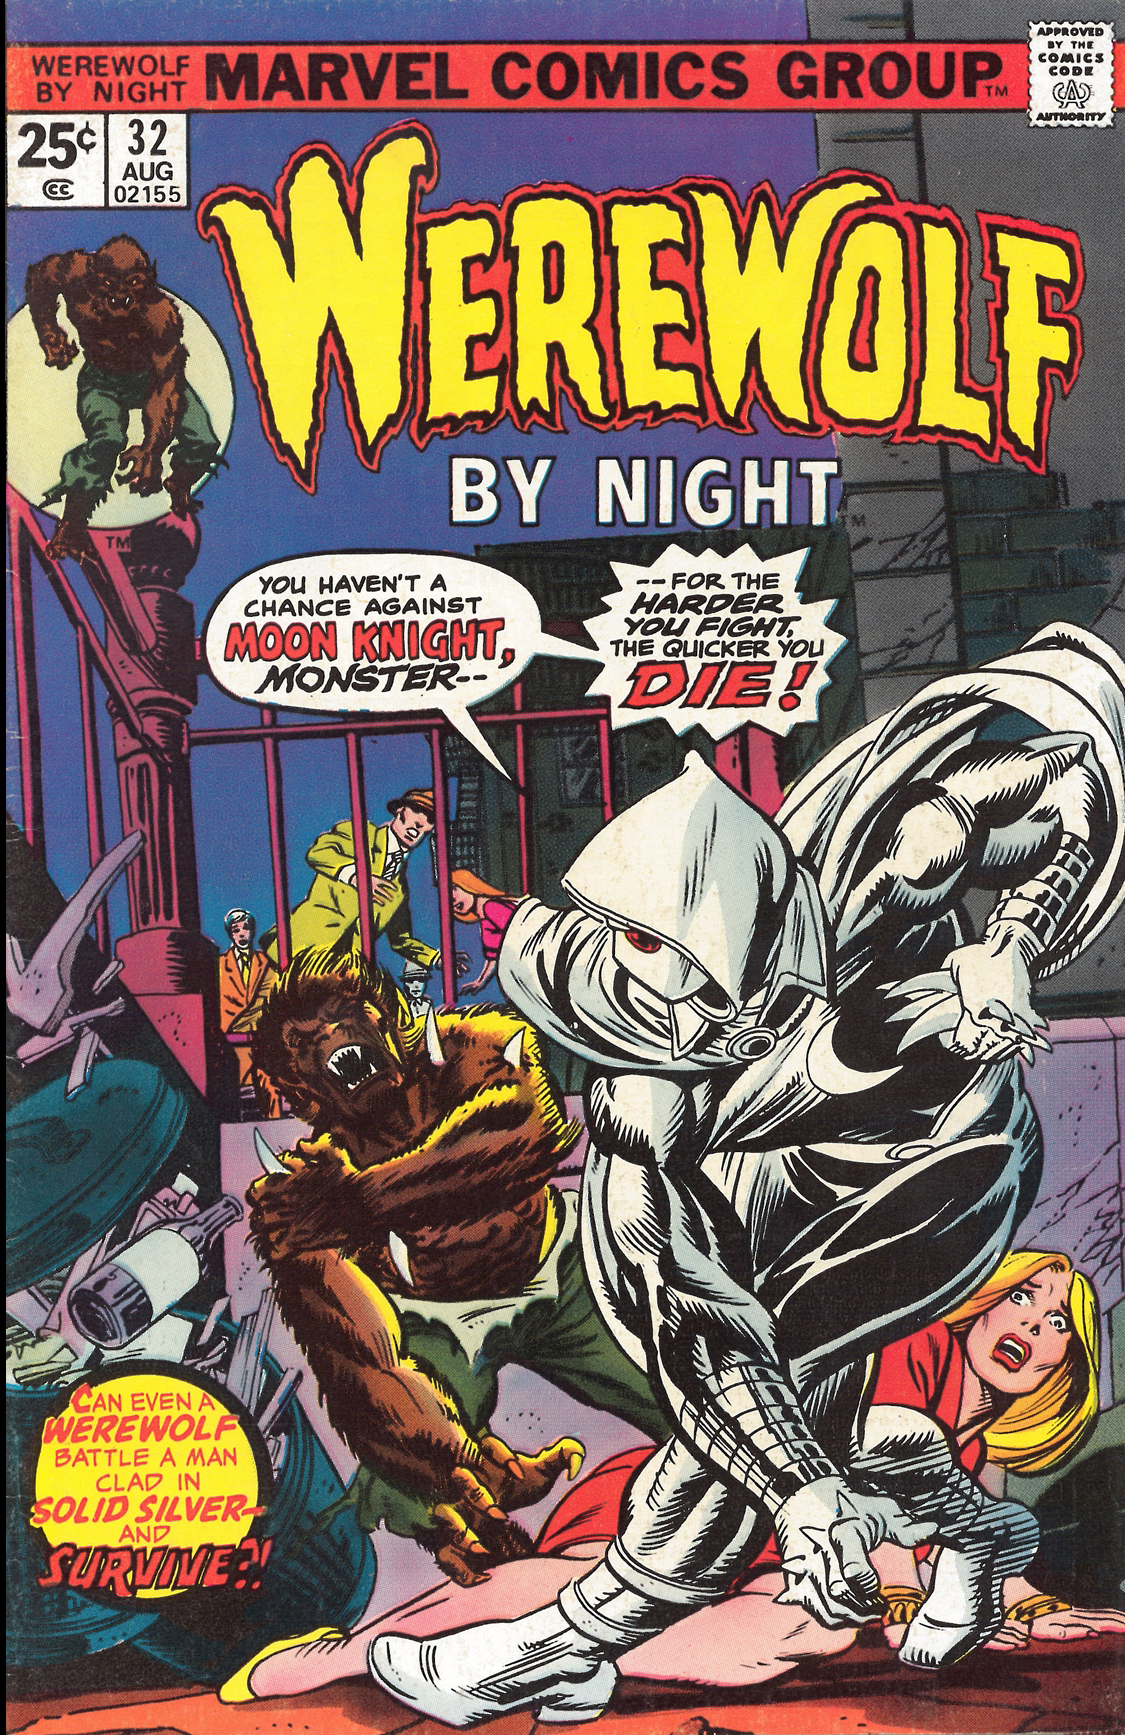 Don Perlin, the creator of Moon Knight, is gonna punch you in the nose if you don't buy his book! - Don Perlin and Doug Moench created Moon Knight. The character first appeared first appeared in Werewolf by Night #32 (August 1975)